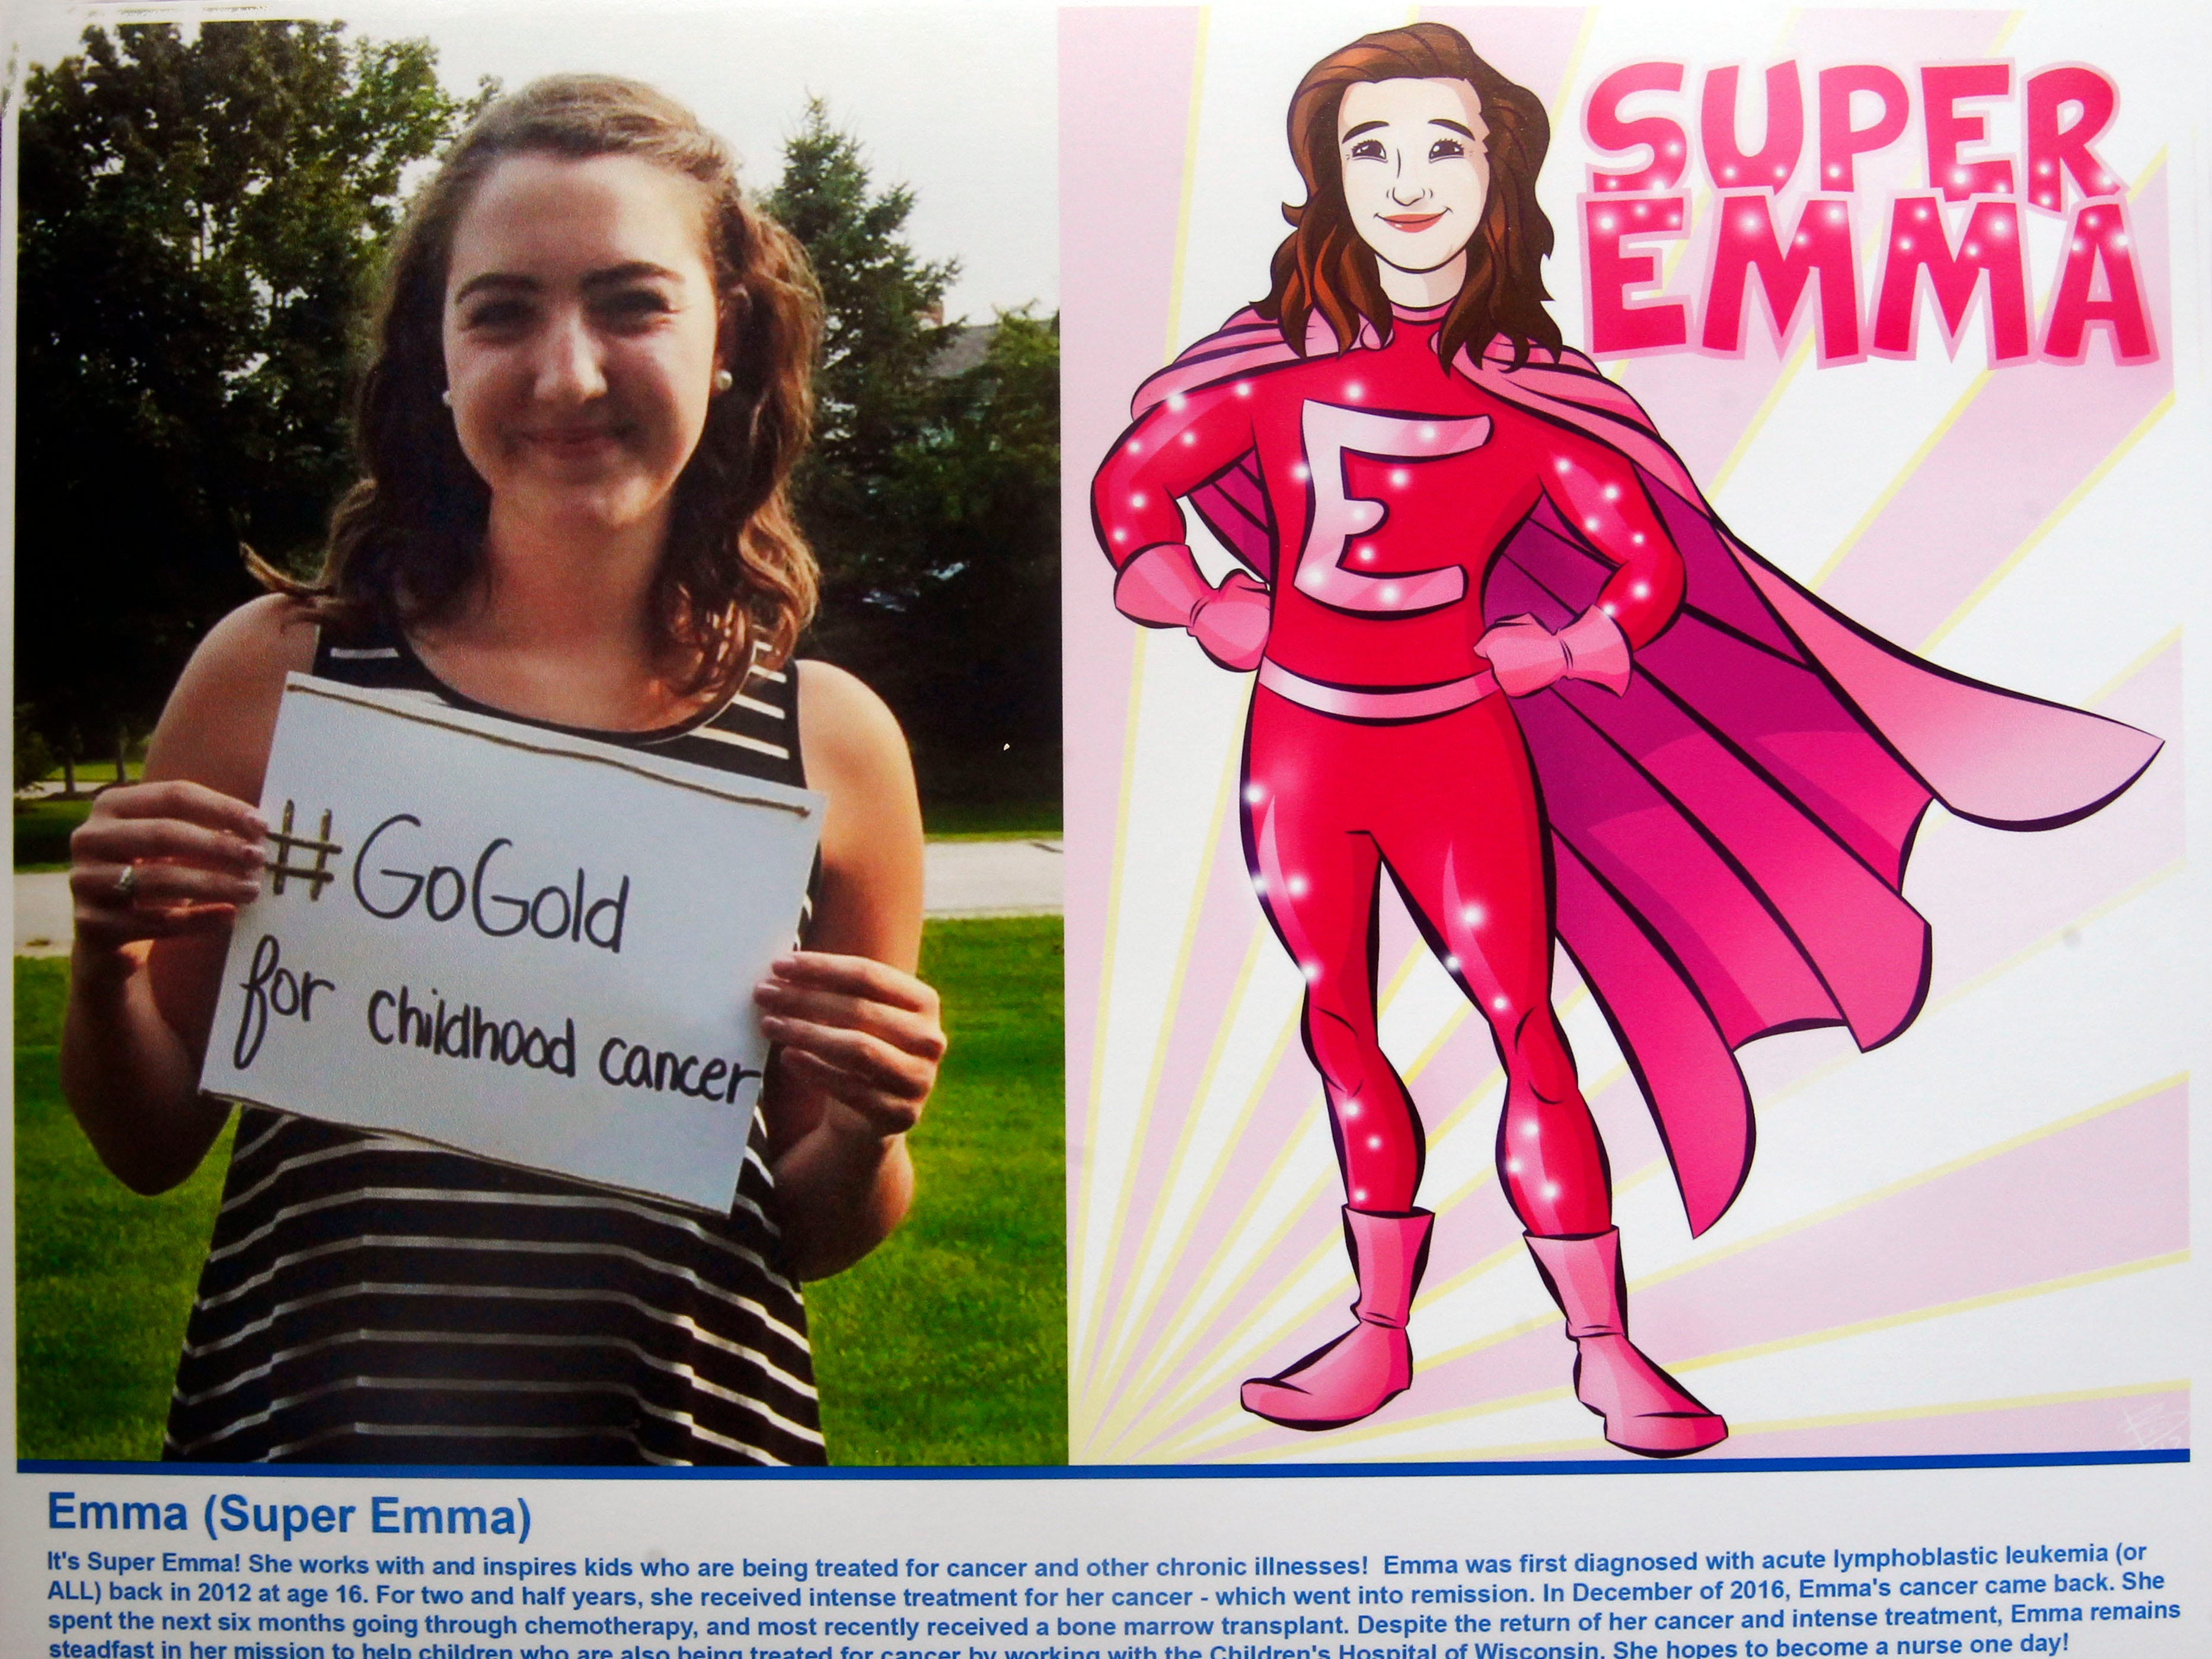 Super Emma is a superhero identity created by Bryan Dyer, owner of You Are the Hero.